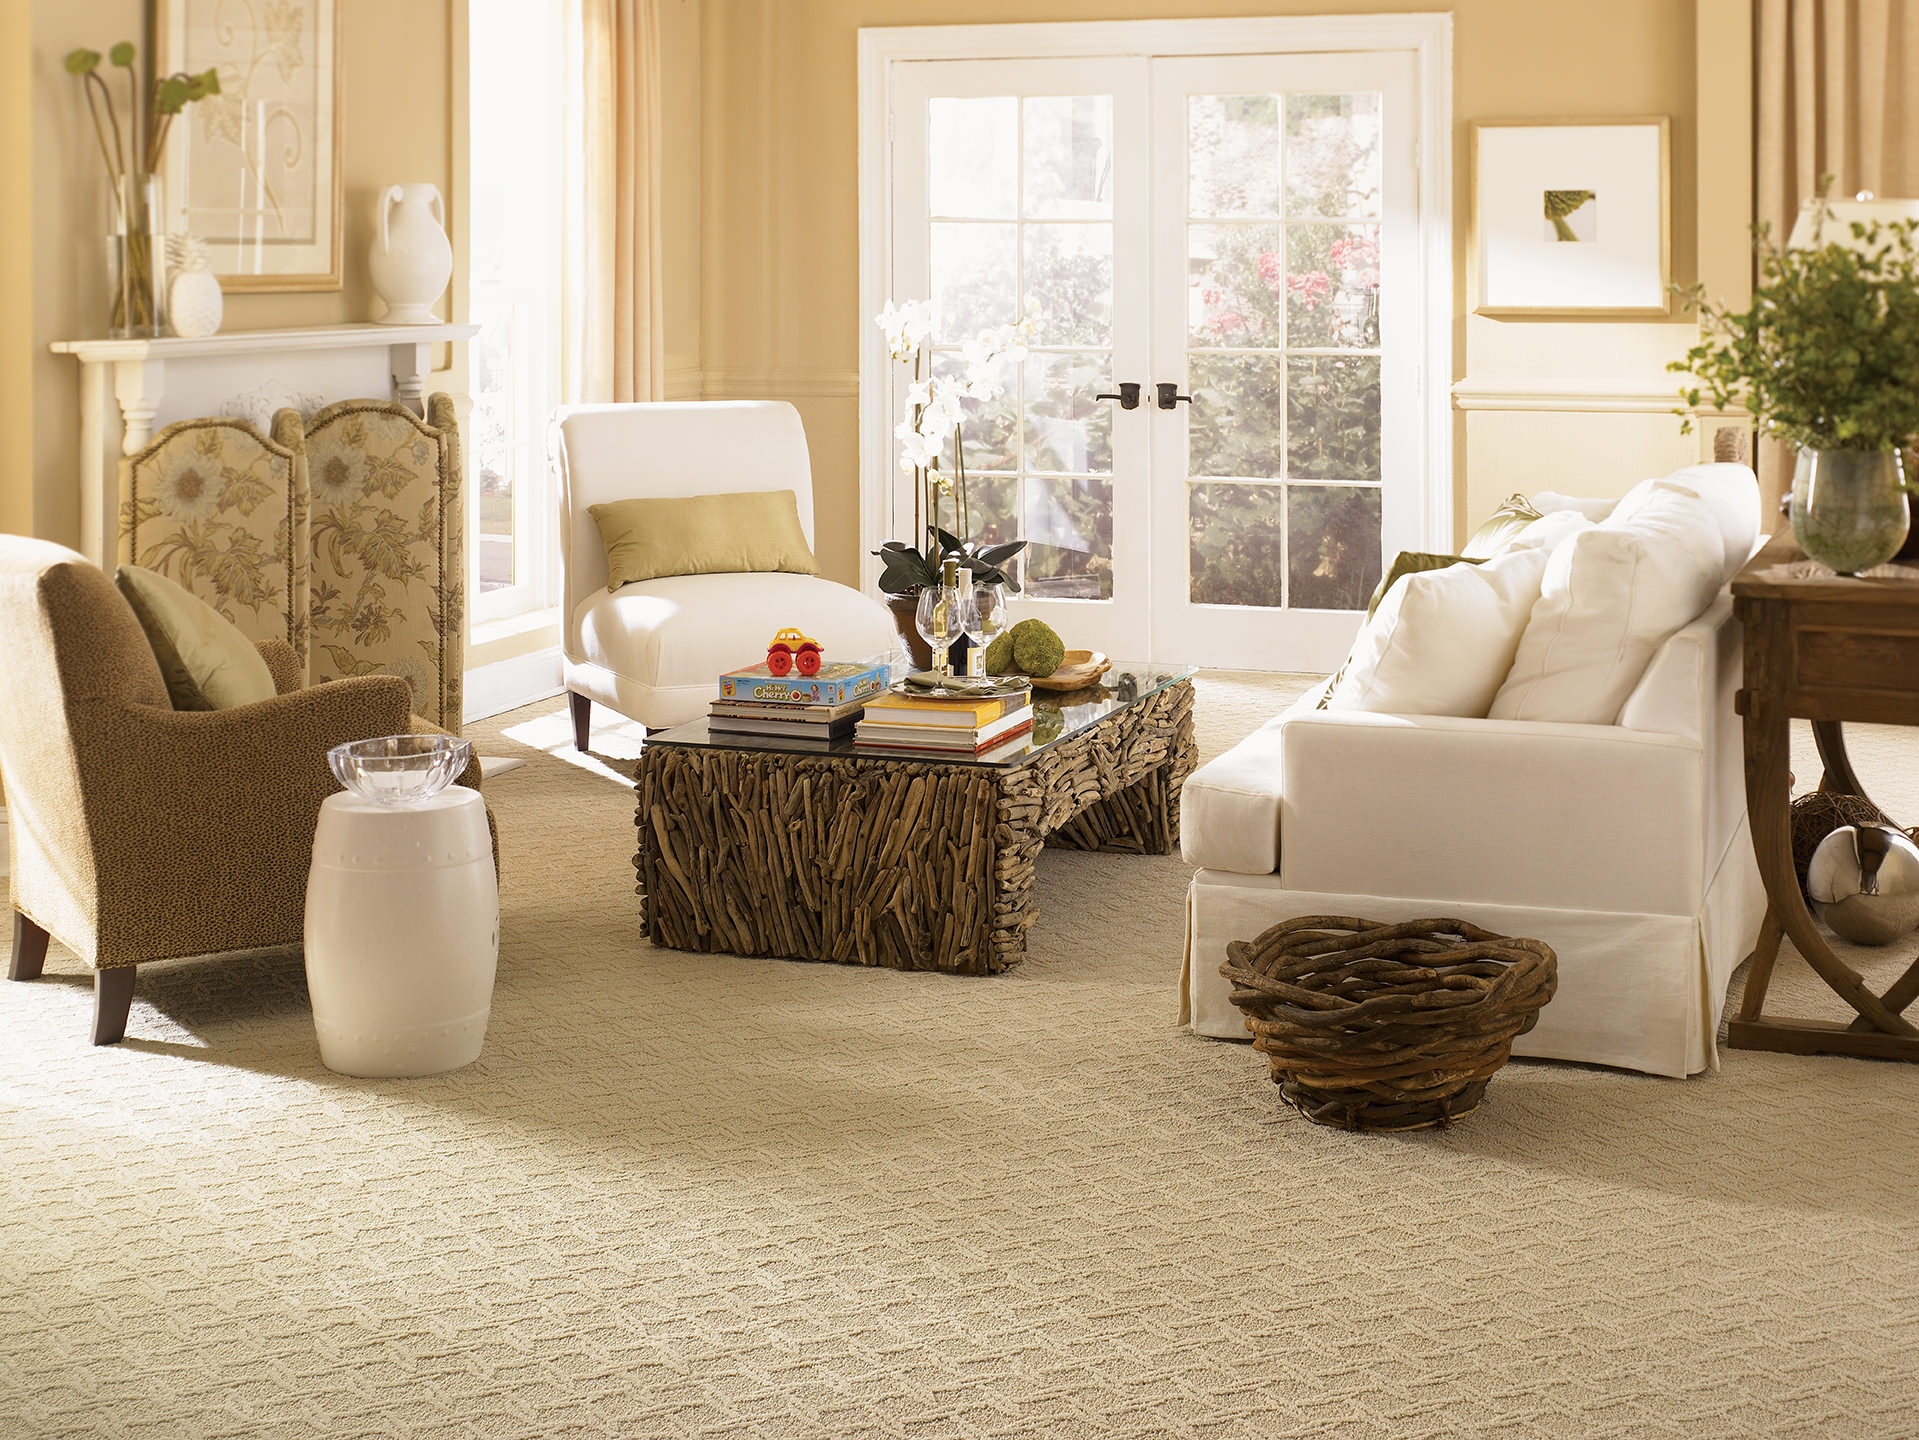 J Rohr Carpeting  Draperies Welcome To J Rohr Carpeting - Carpet designs for home